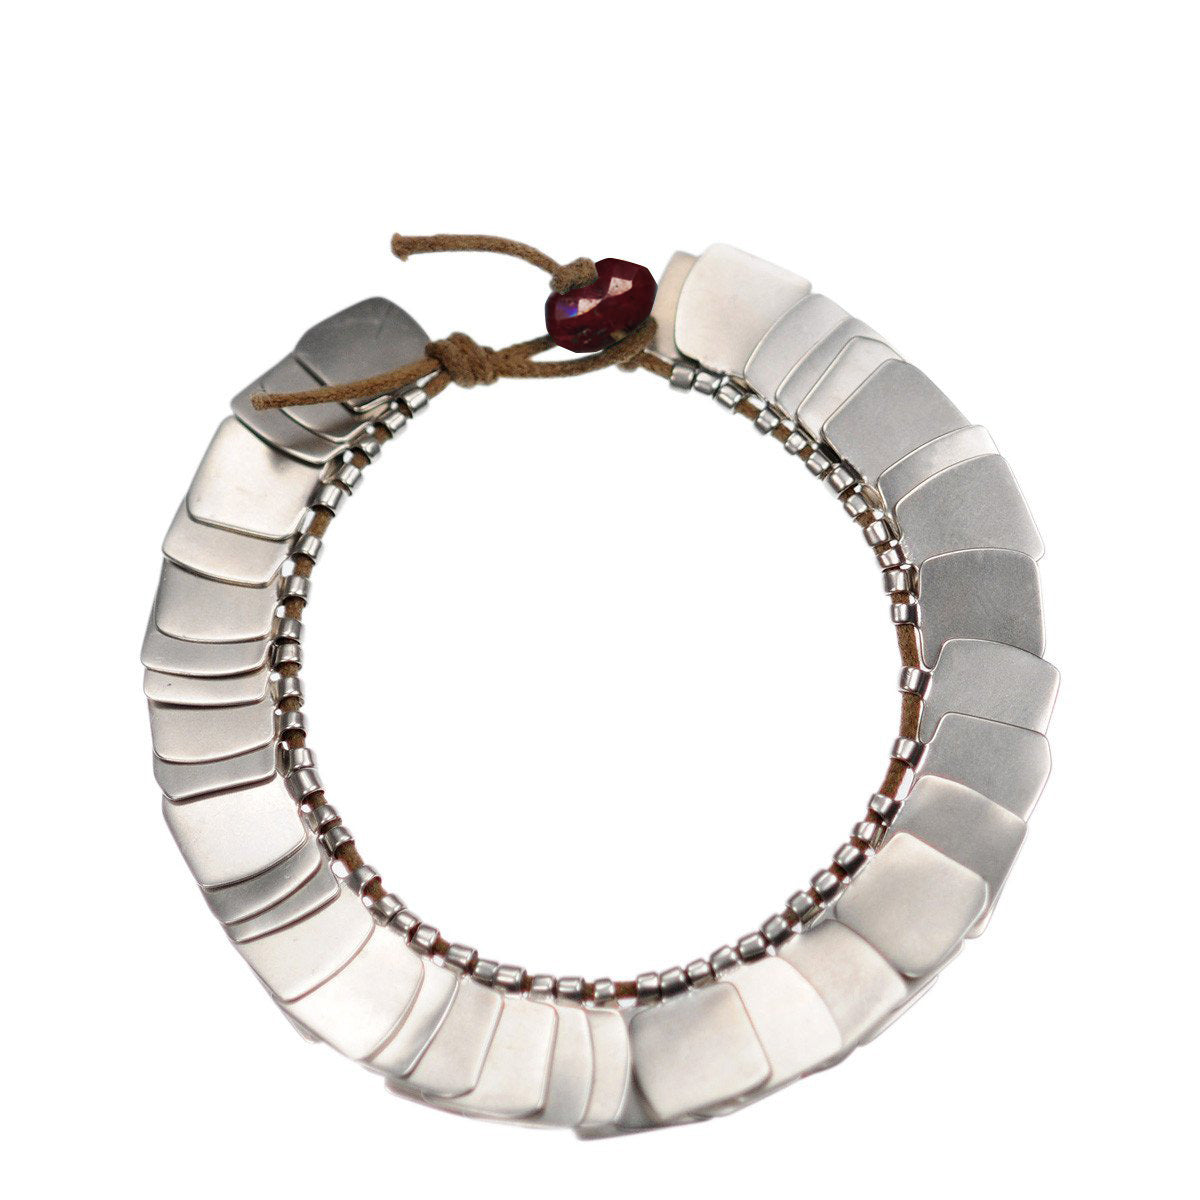 Sterling Silver Full Flattened Metal Bracelet on Cord with Ruby Bead Closure